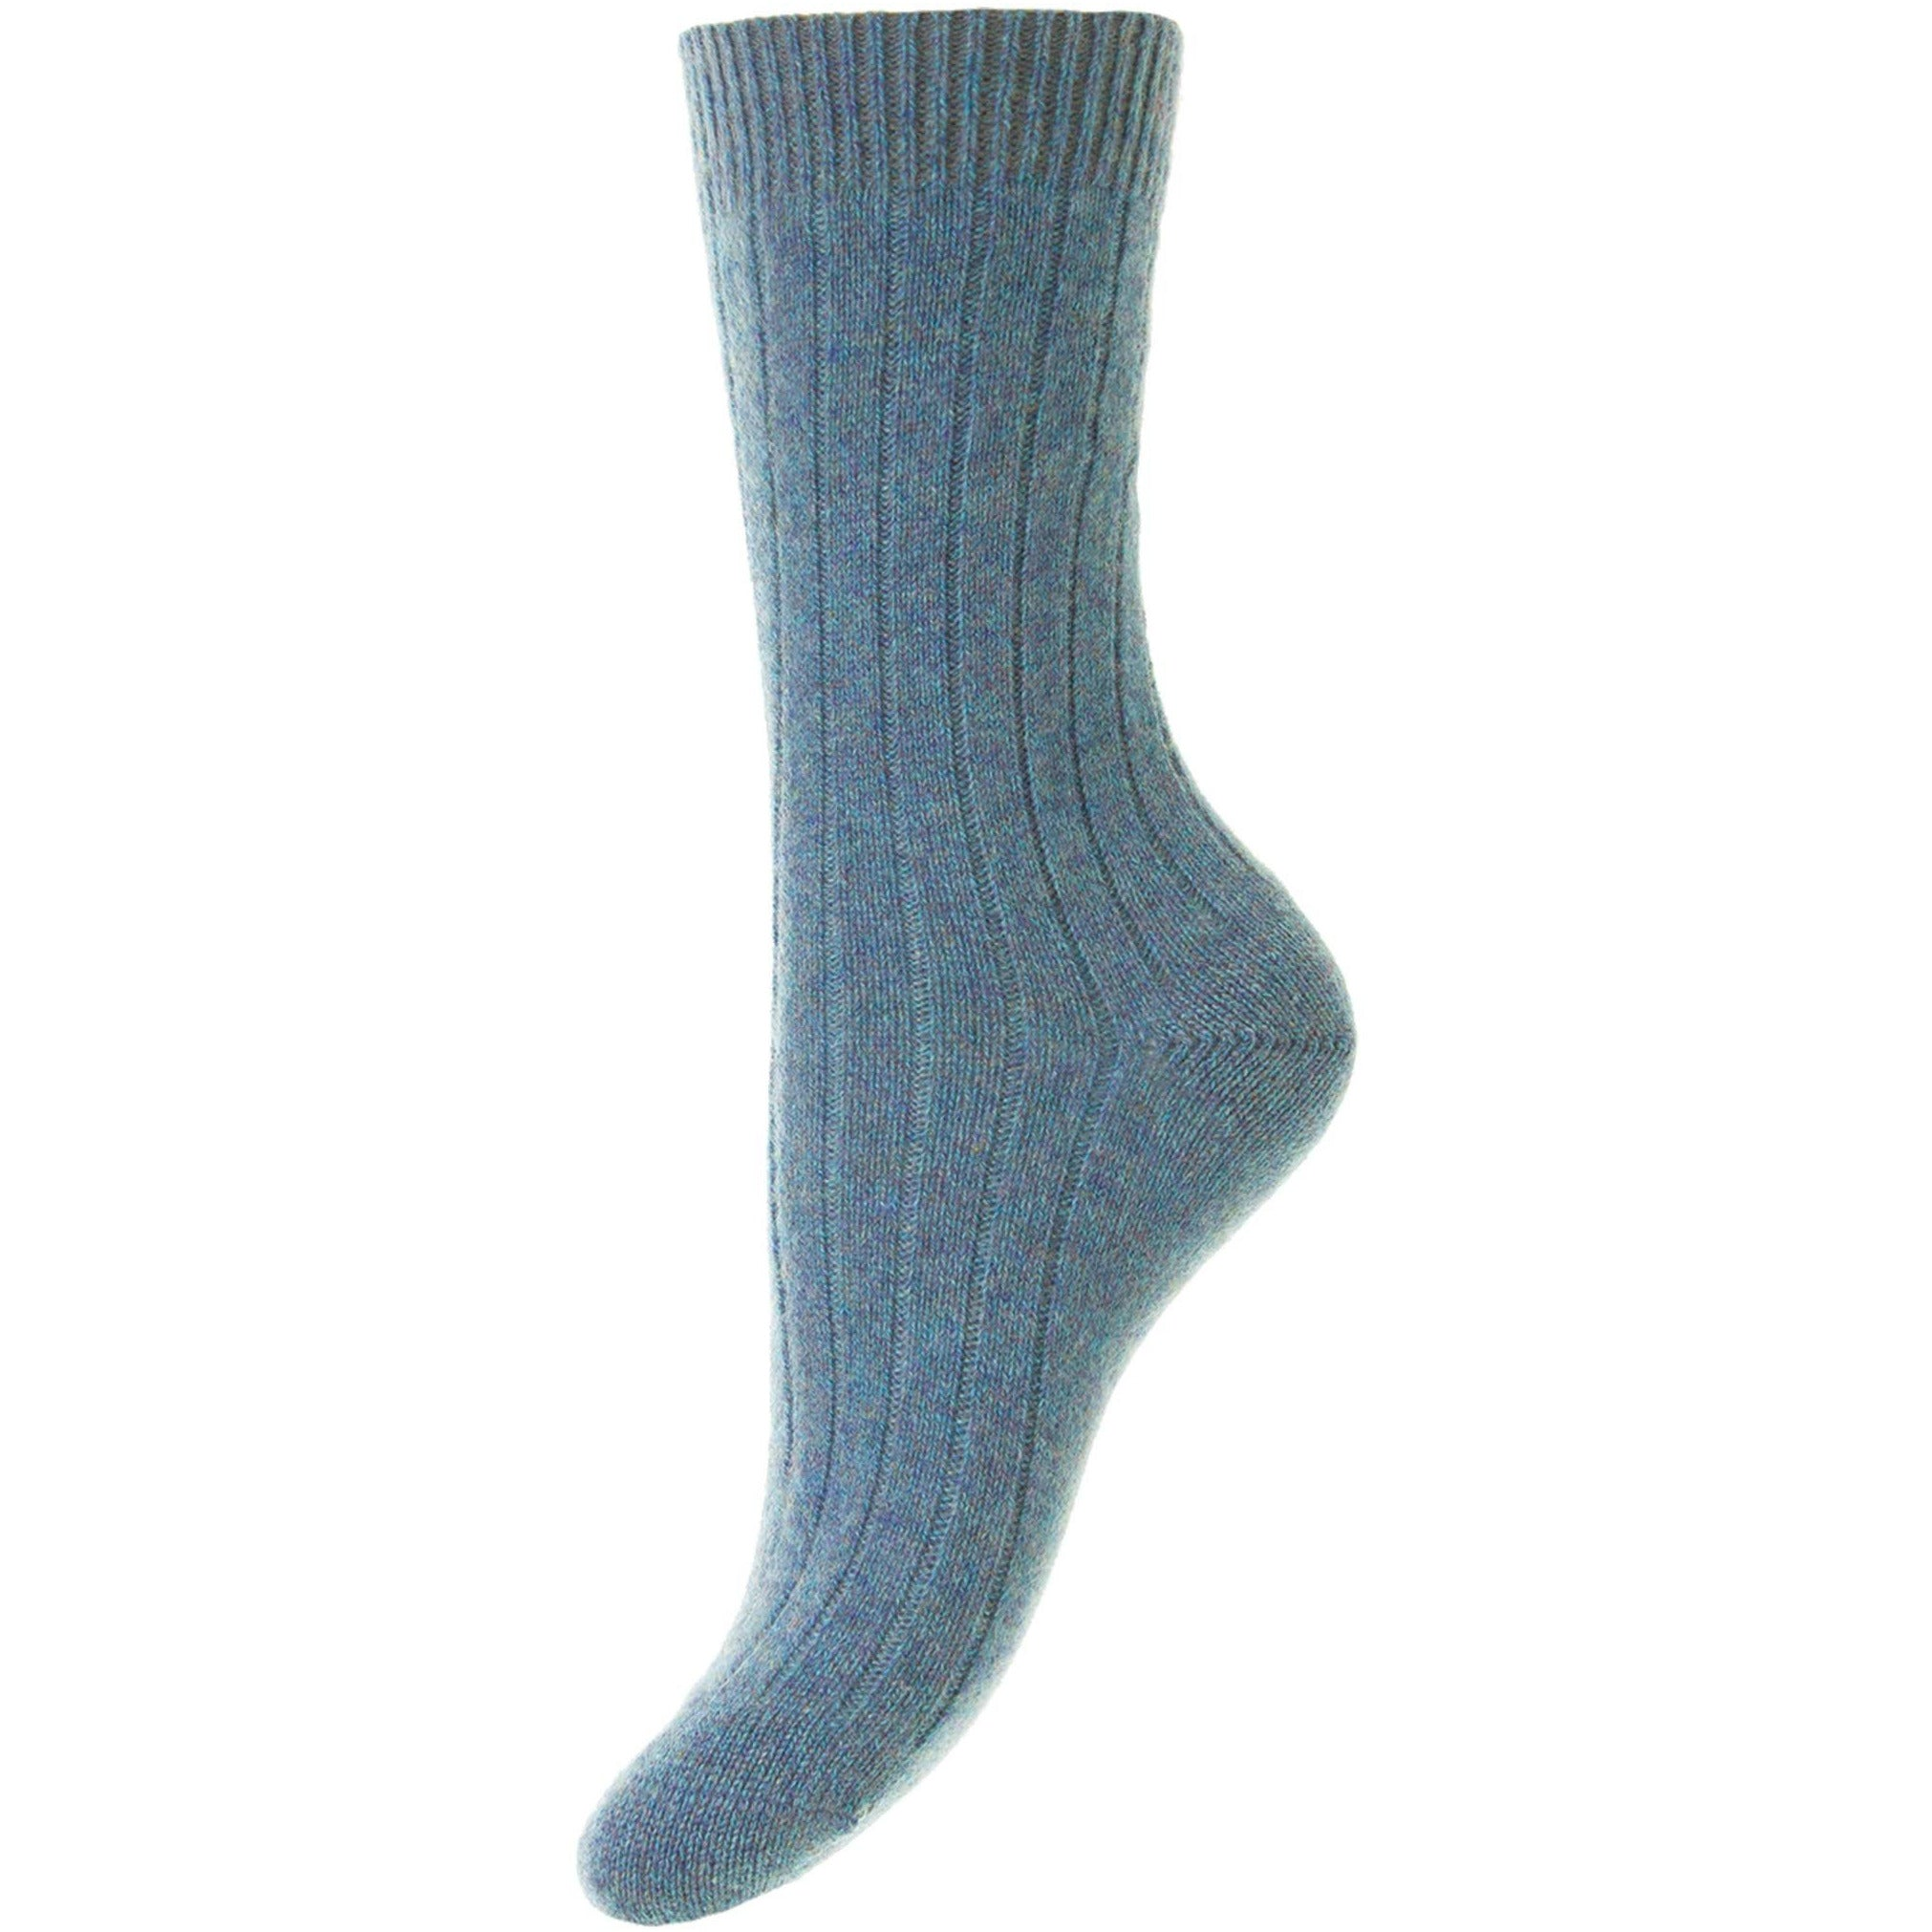 Tabitha 5x1 Rib Cashmere Ladies Dress Socks